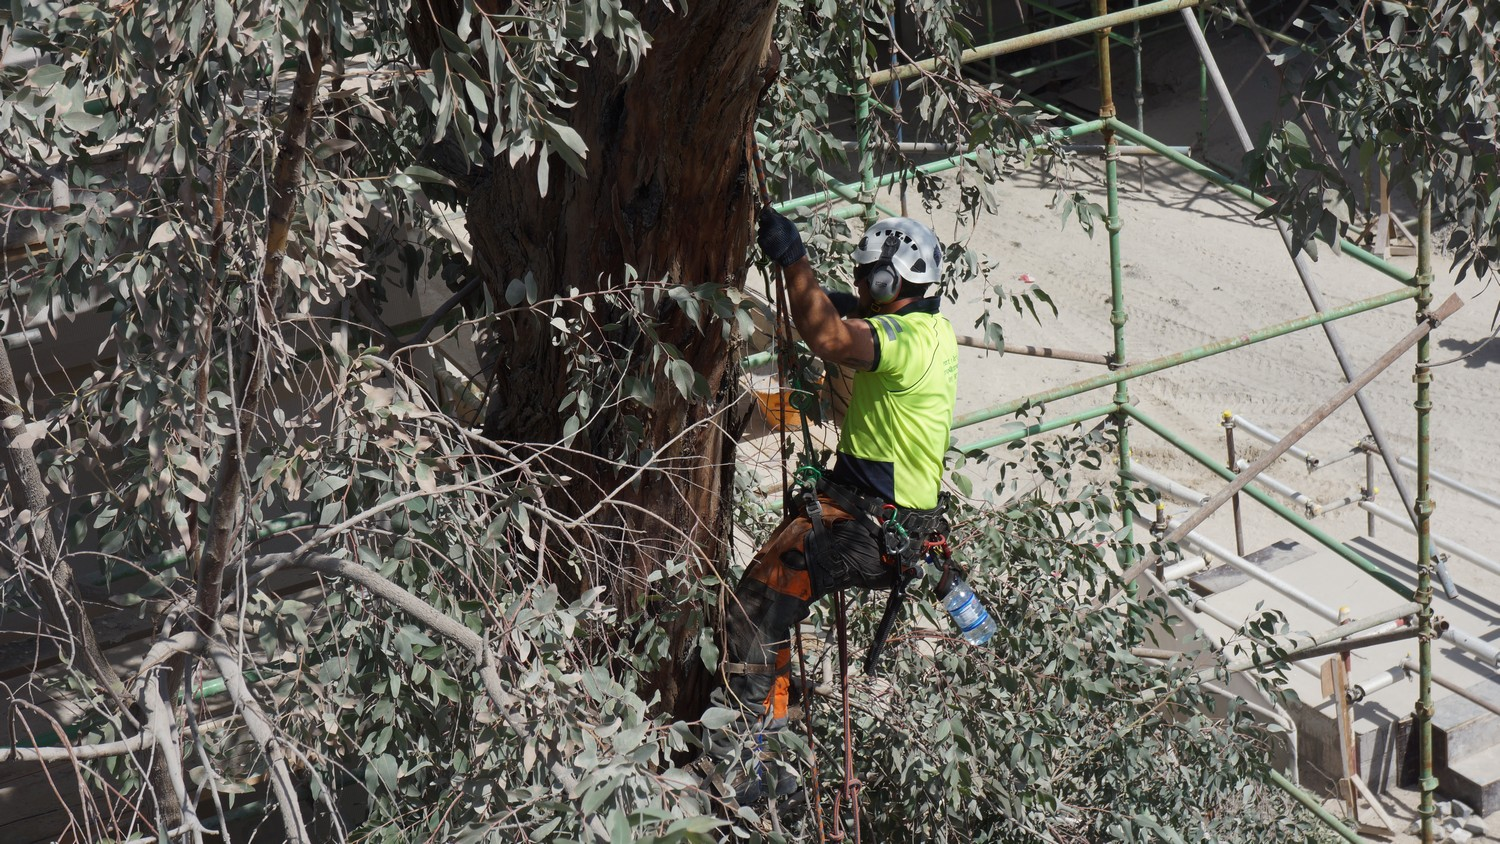 Tree Surgery to an old eucalyptus, Abu Dhabi